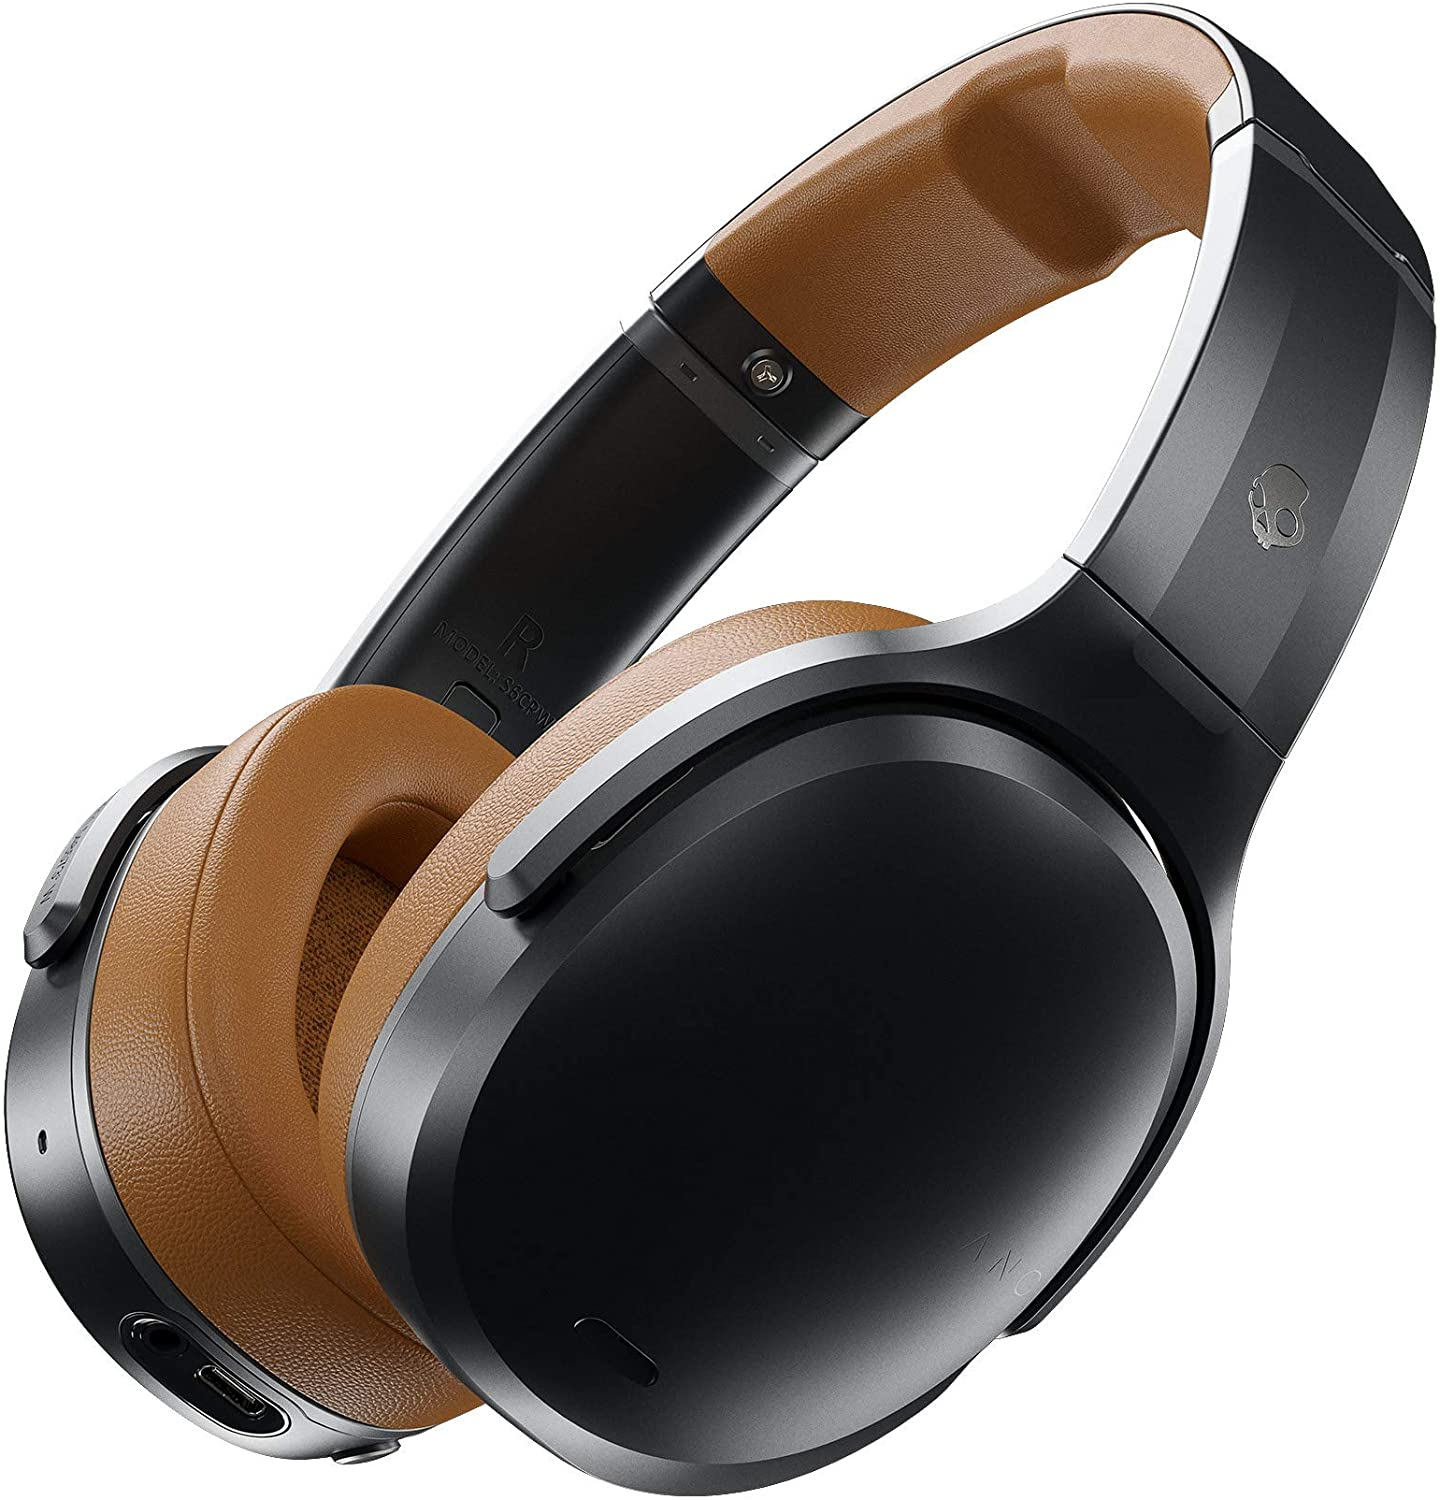 Skullcandy Crusher ANC Personalized Noise Canceling Wireless Headphone - Black/Tan